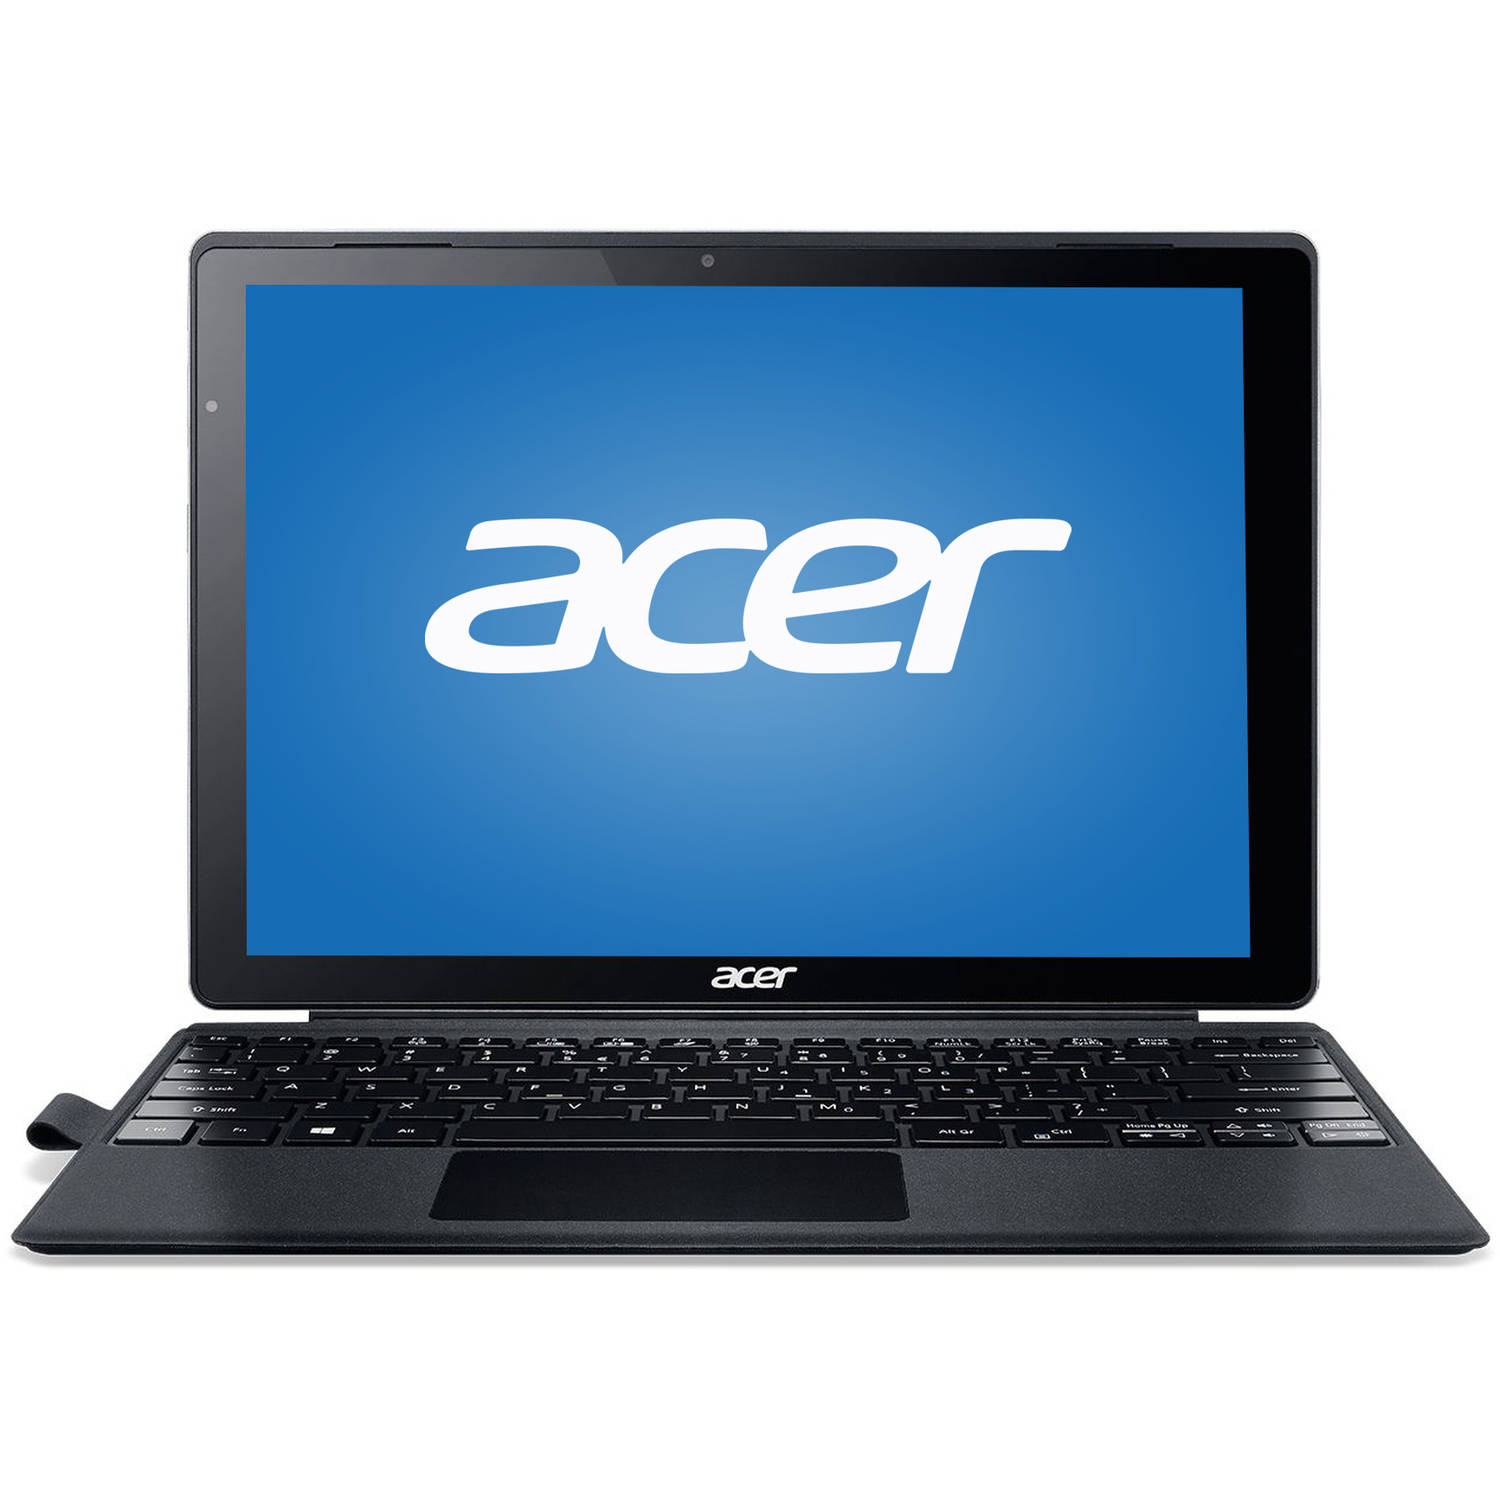 "Acer Aspire Switch Alpha 12"" Laptop, touch screen, 2-in-1, Windows 10 Pro, Intel Core i5-6200U Processor,... by Acer"